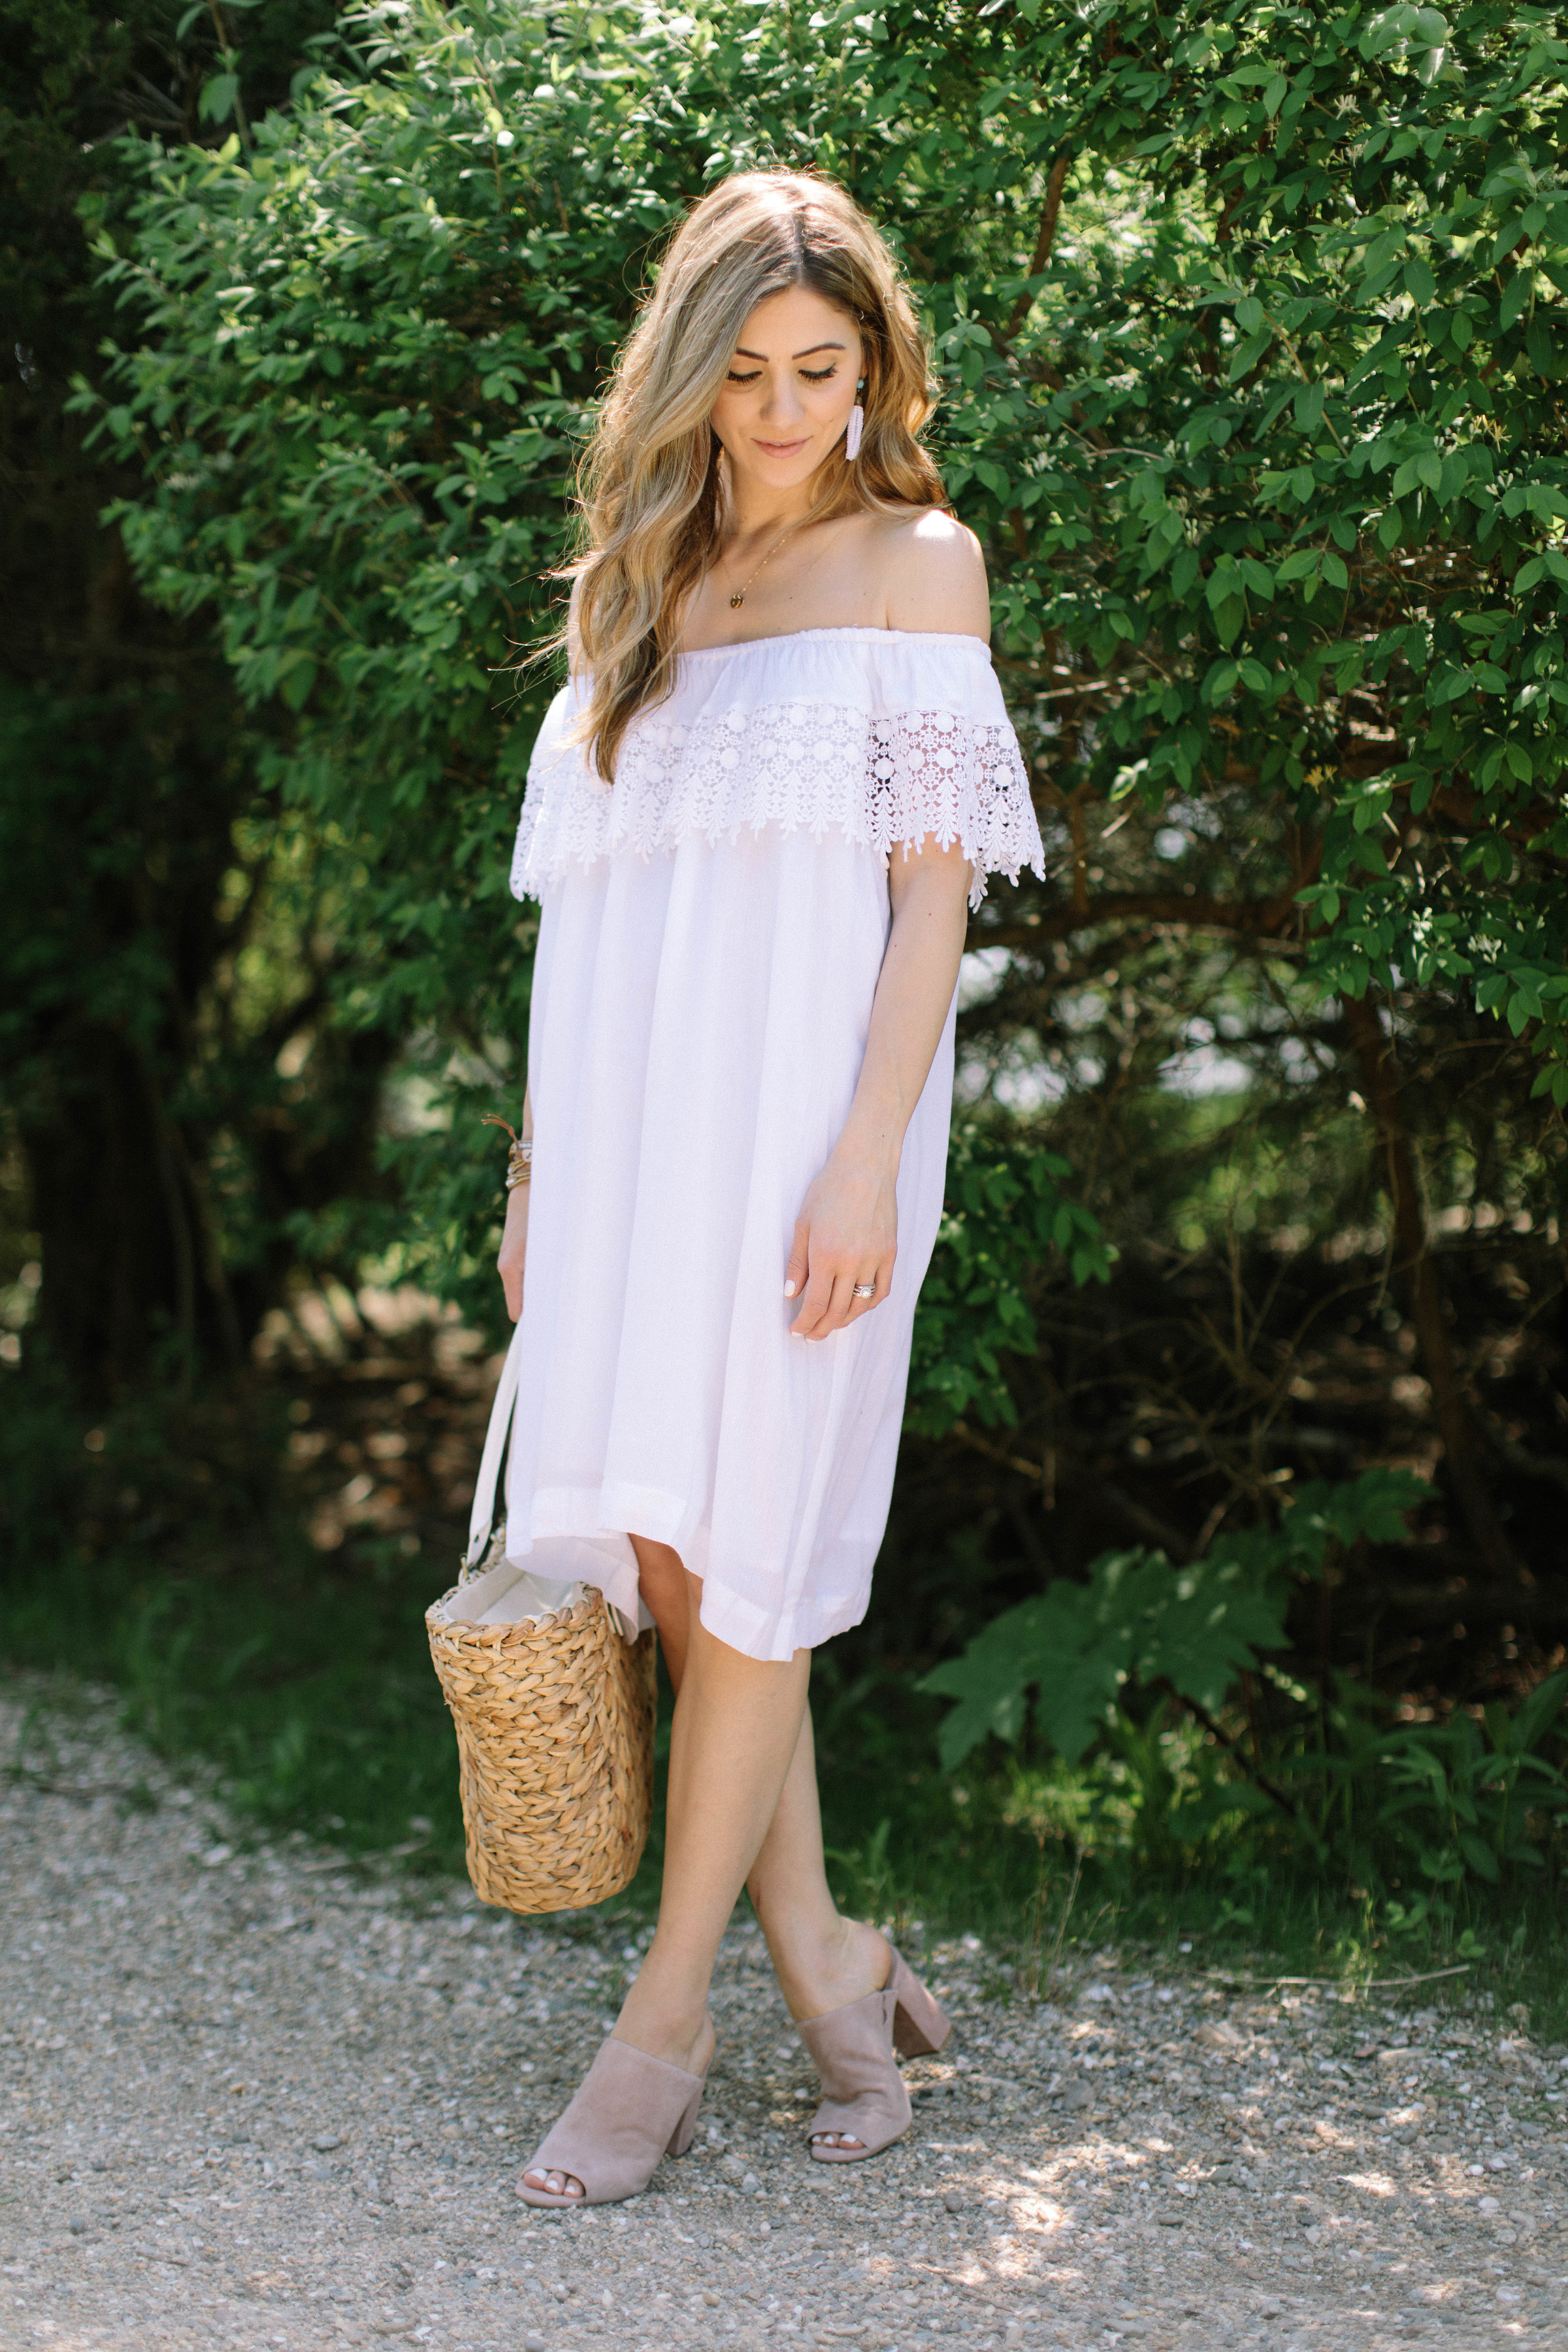 Want to keep up with the latest summer fashion trends? Check out this post on what's in style for the 2017 summer season!